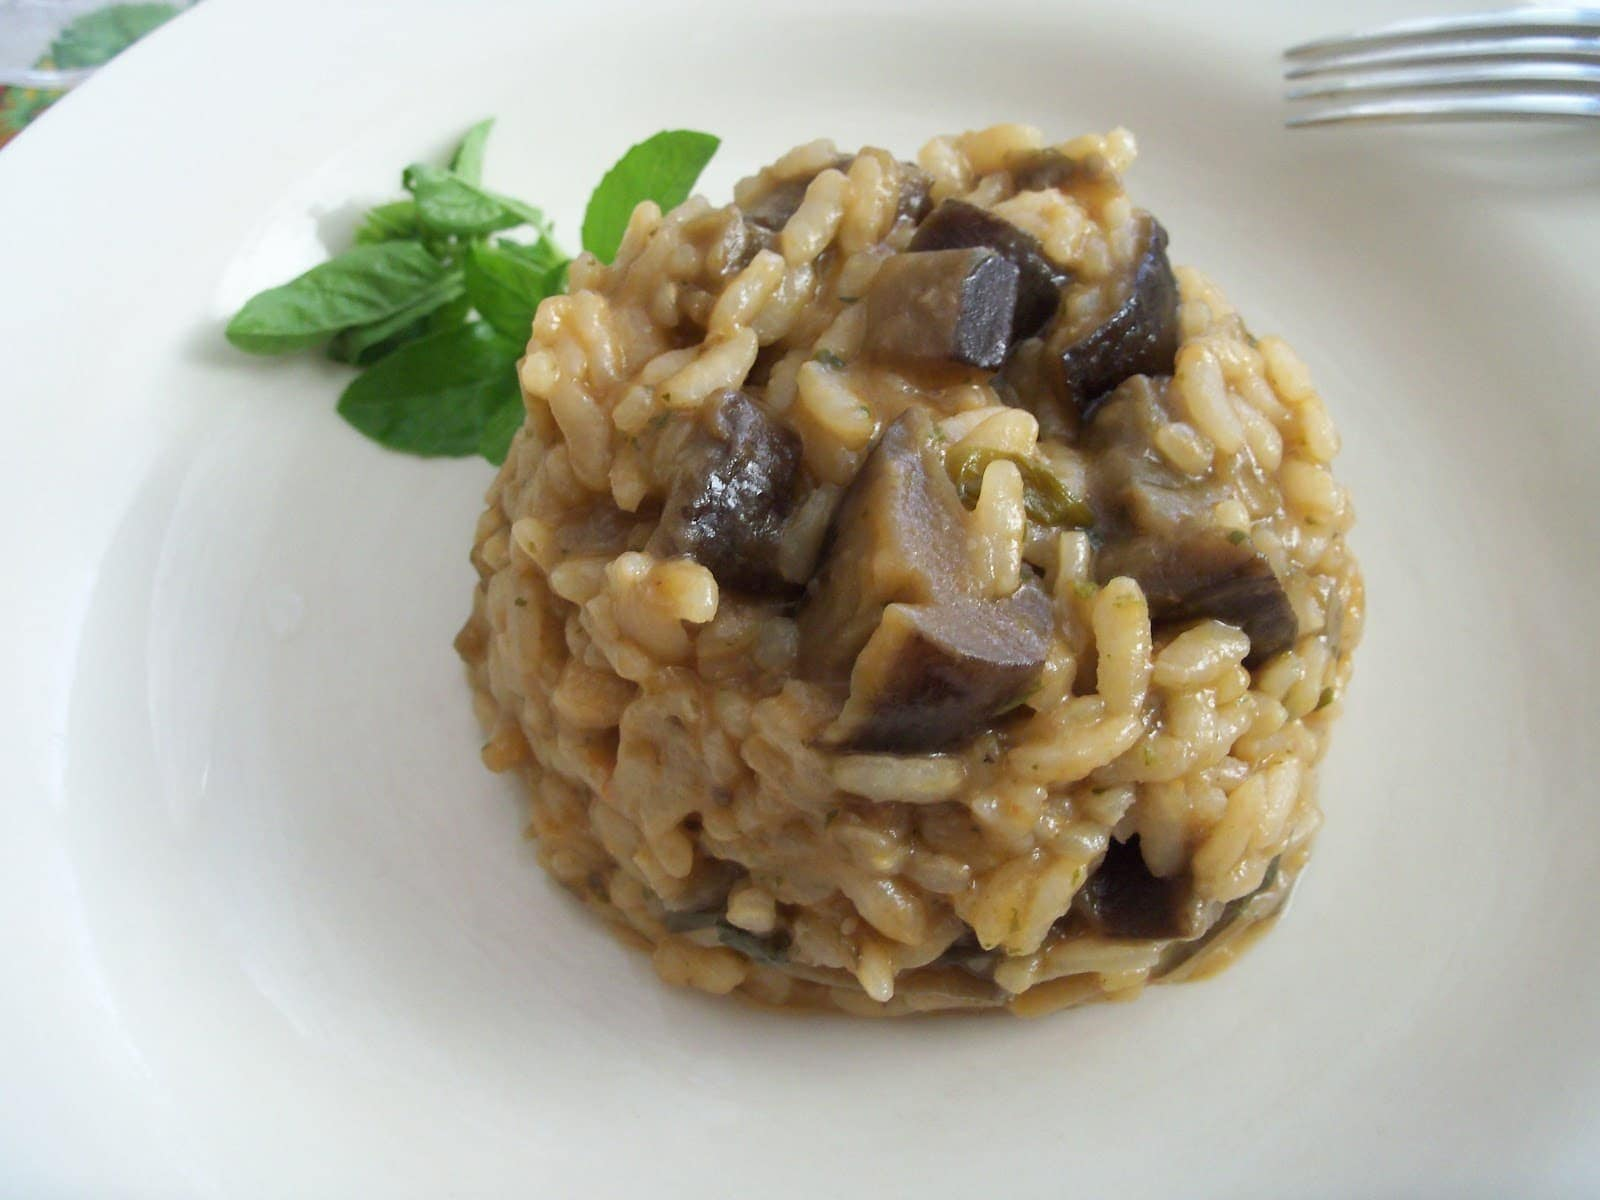 Risotto with eggplant is a recipe that would delight even those who don't normally eat eggplants.